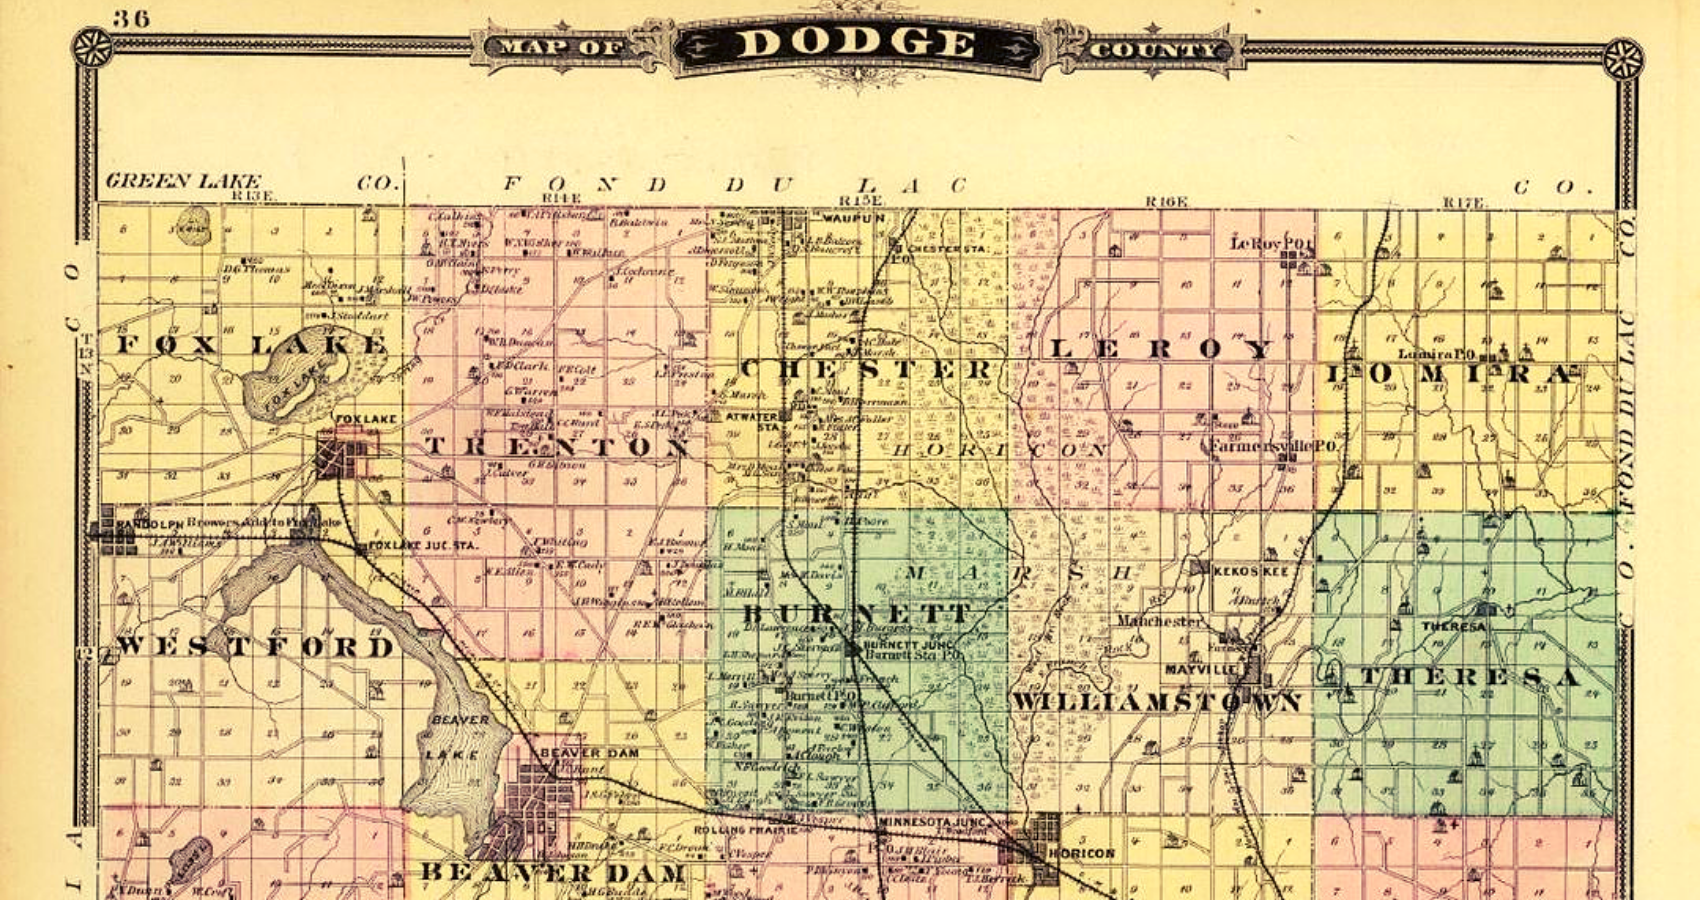 Dodge County Plat Maps & Atlases